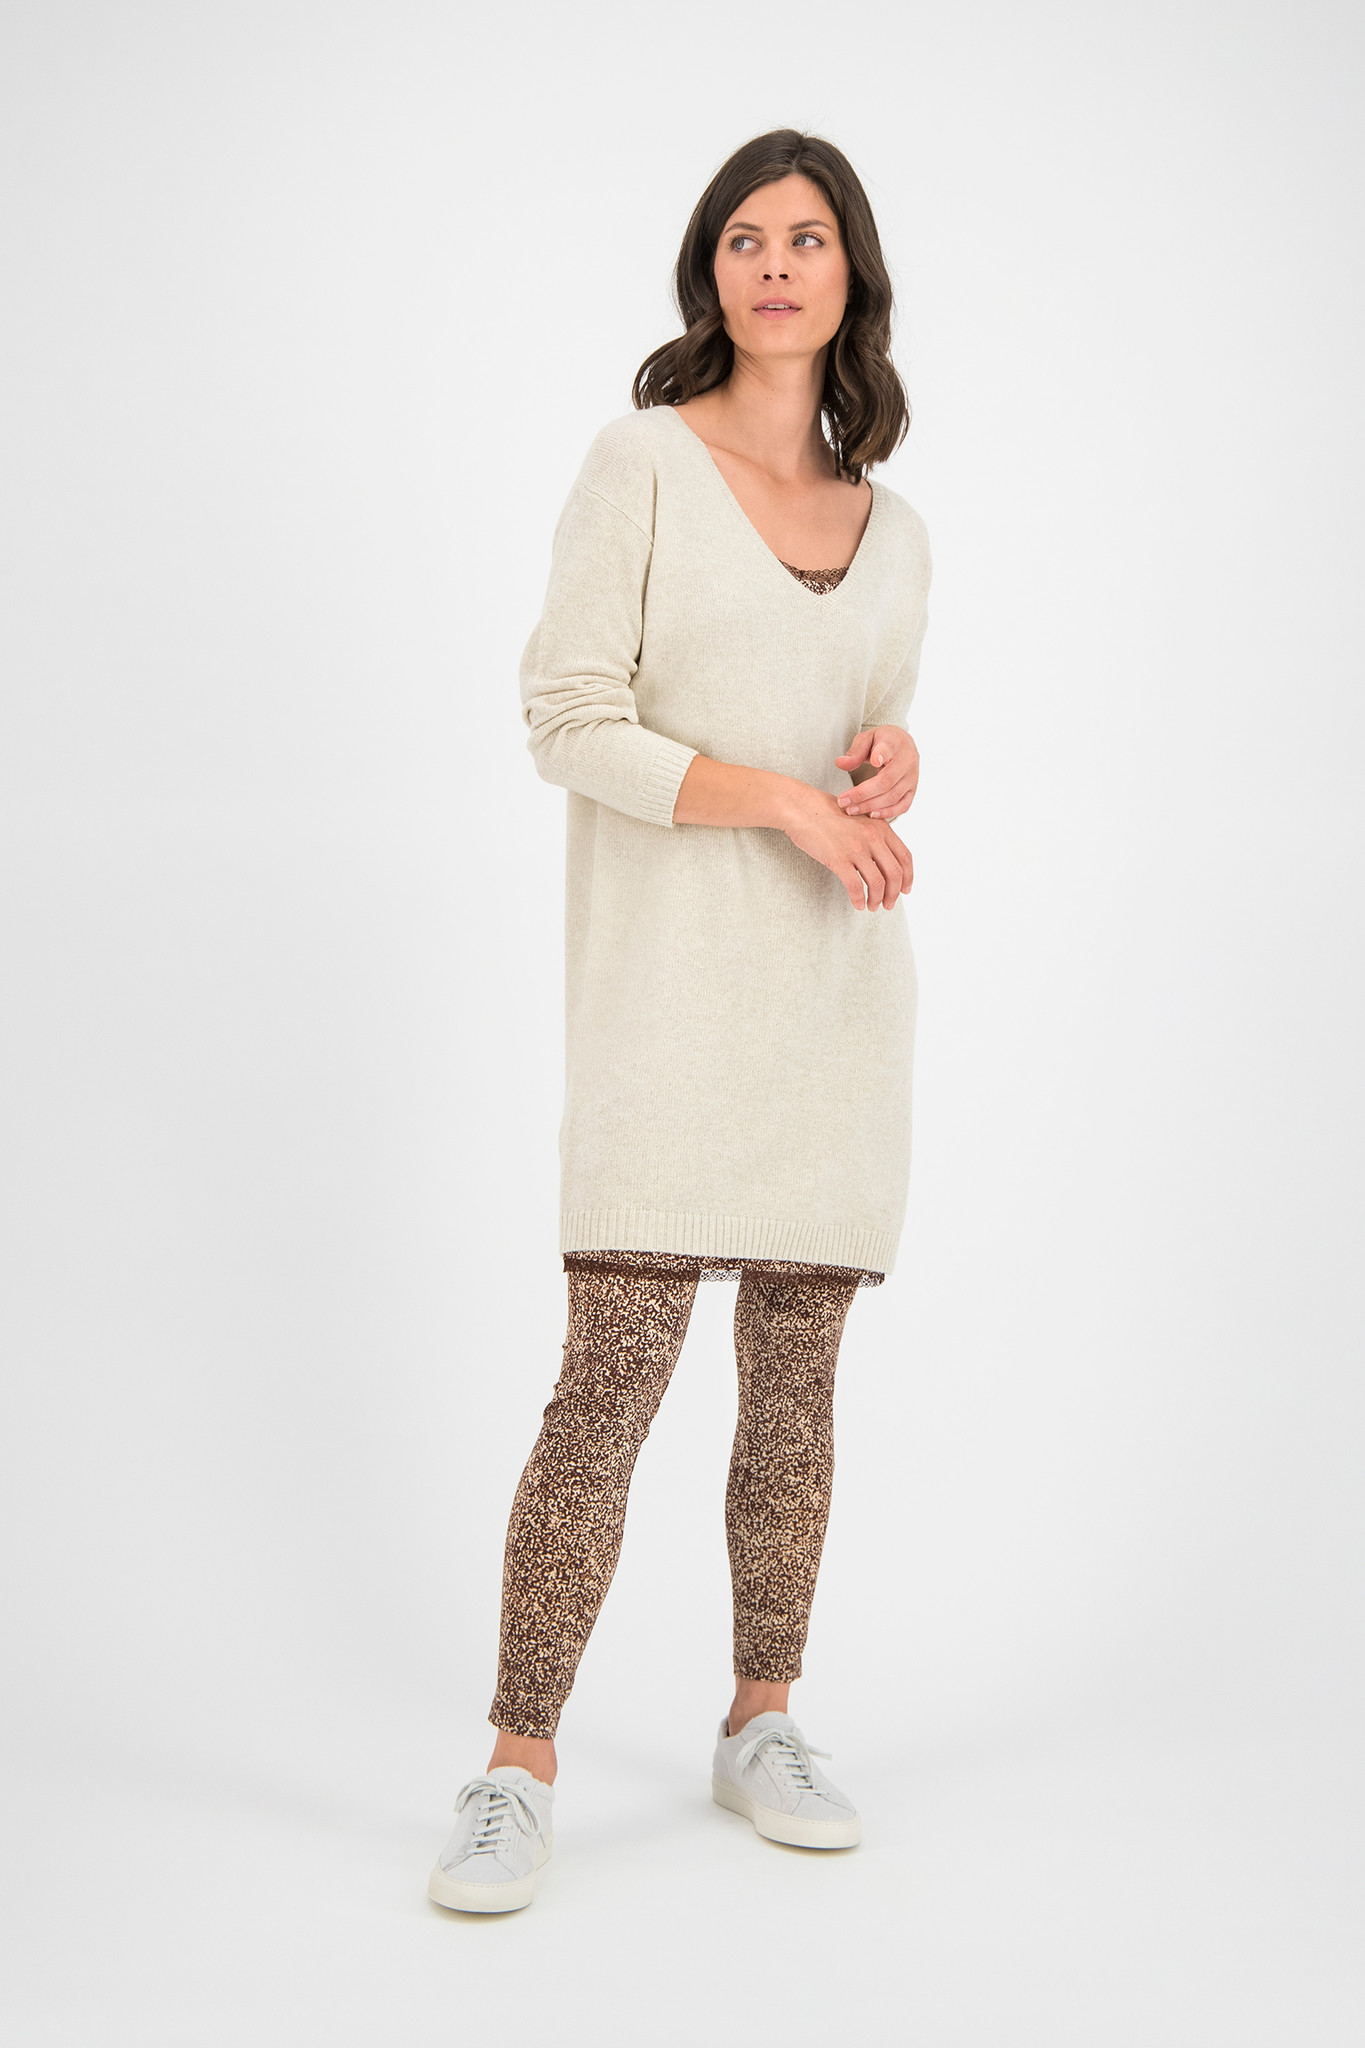 SYLVER Merino Mix Dress - Oatmeal